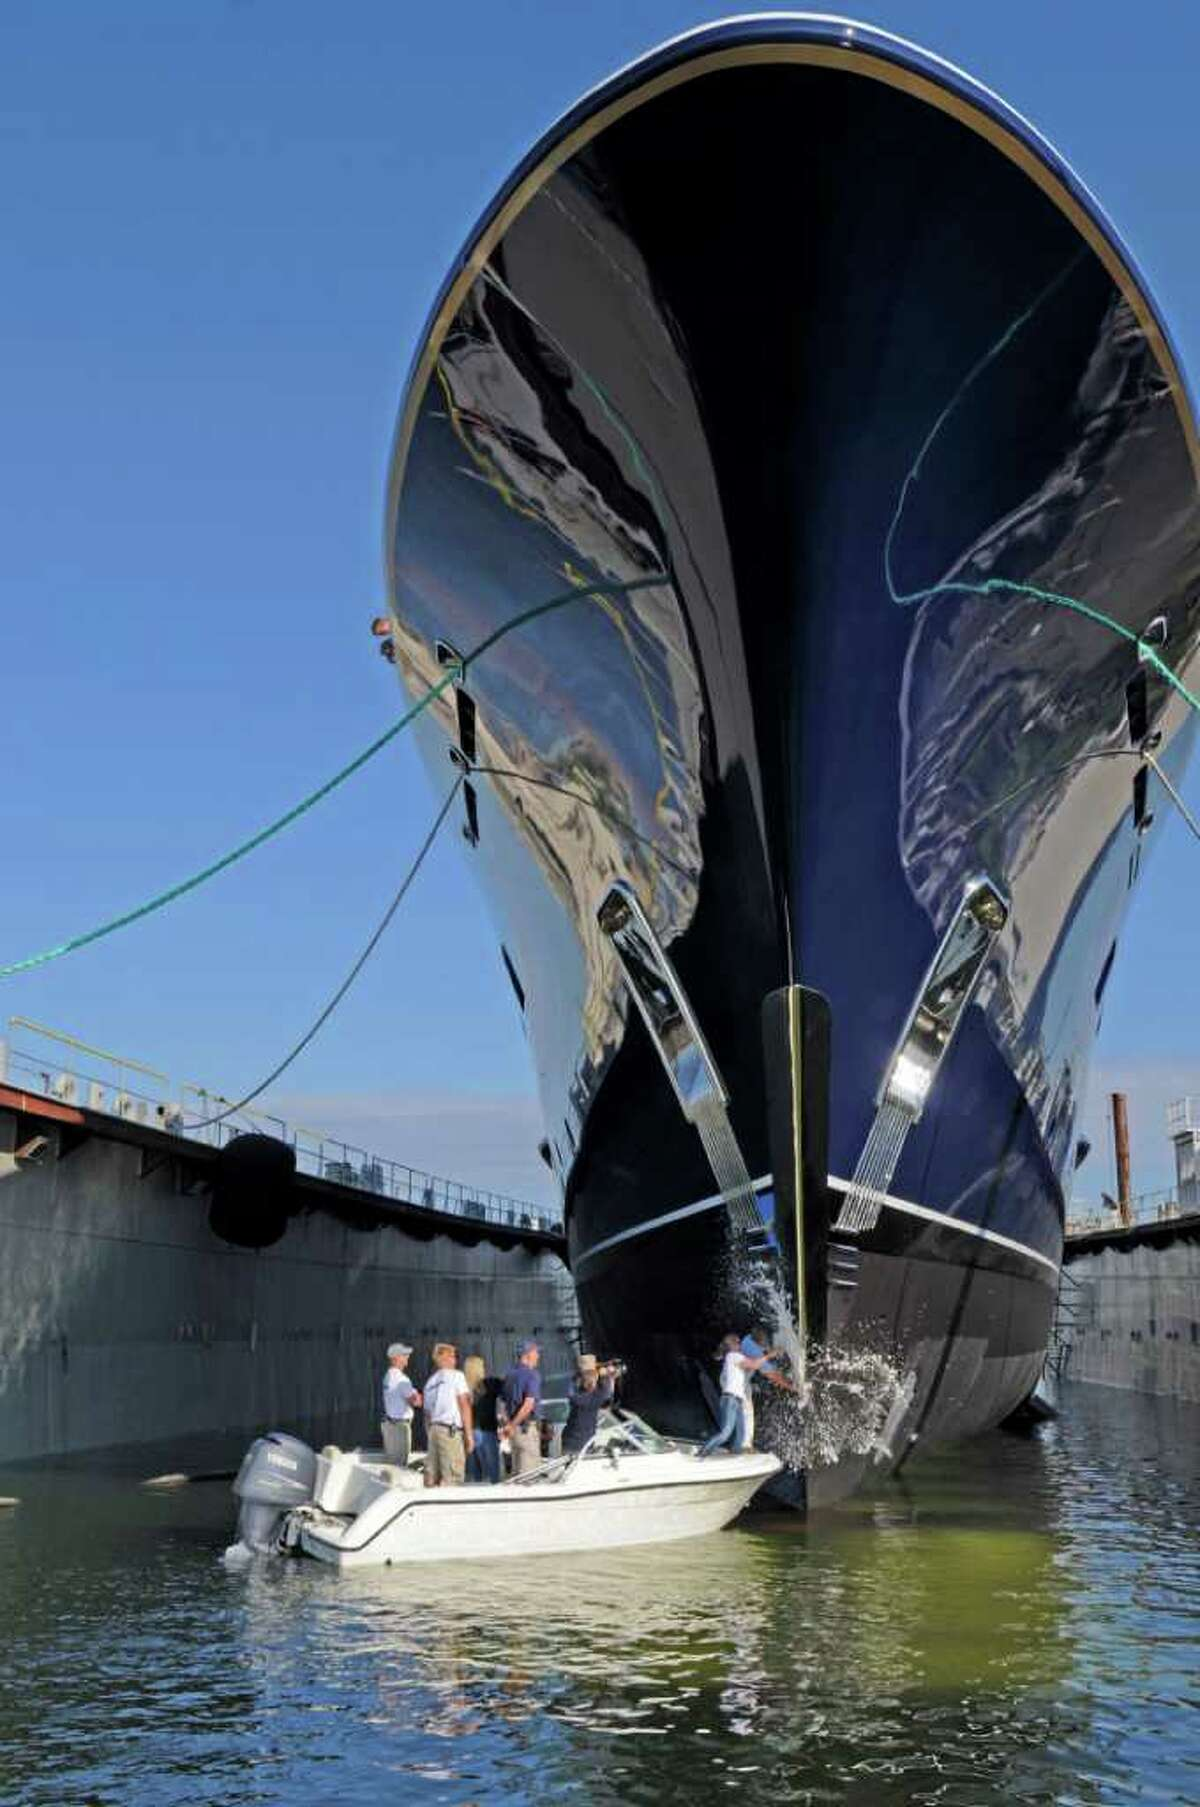 The Cakewalk, Derecktor's signature the yacht, appears in this file photo. The yacht builder that has gone bankrupt twice in Connecticut will probably be finished in Bridgeport amid eviction from its facility there, a $1.77 million lien on its equipment, and another bankruptcy filing in New York.